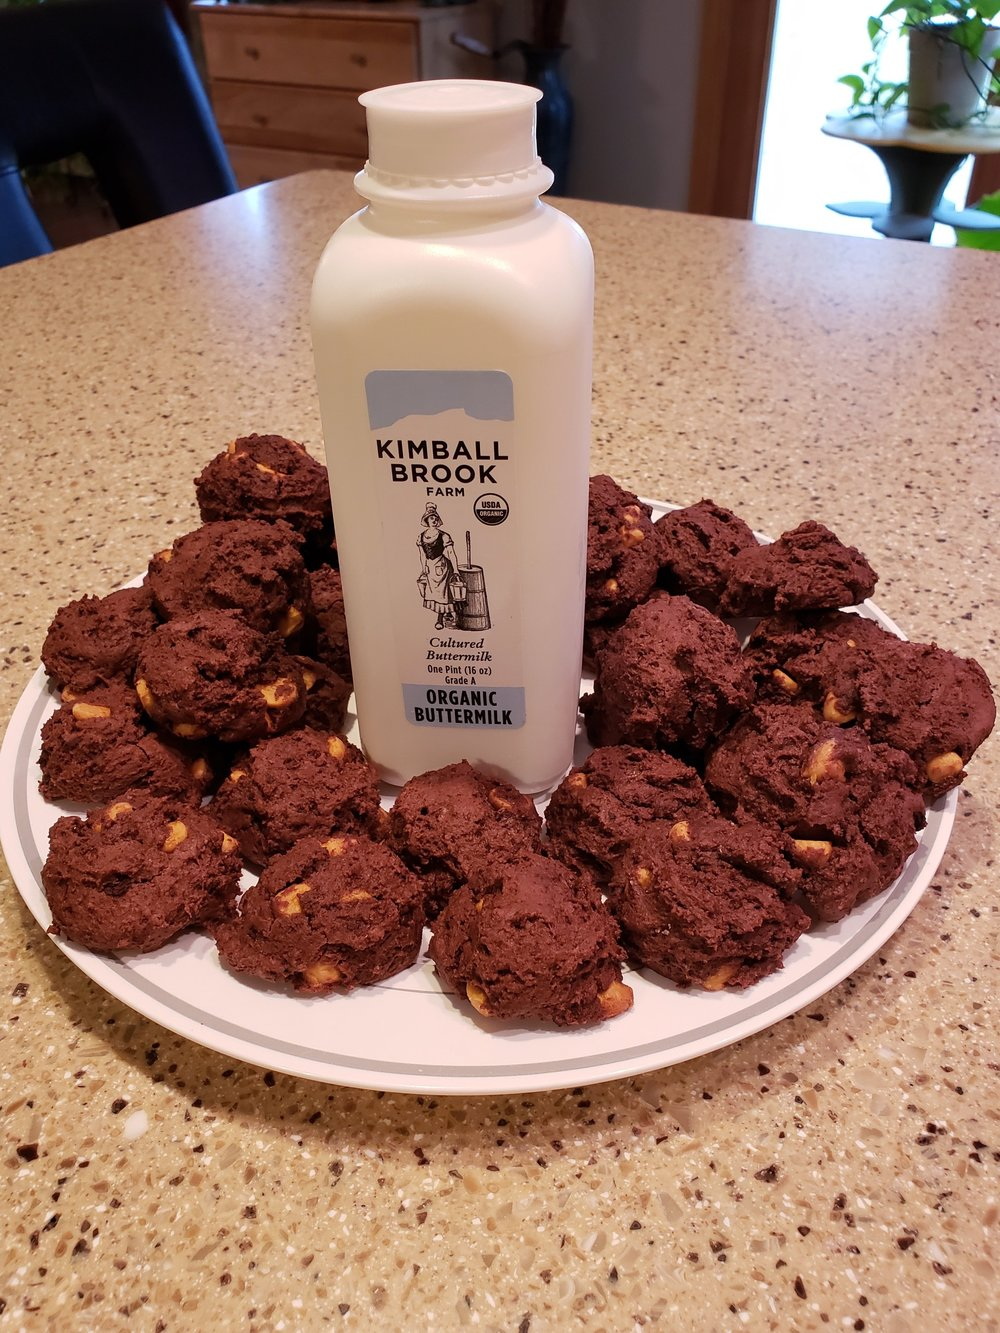 Chocolate Drop Cookies w/ Butterscotch Chips using Kimball Brook Cultured Buttermilk